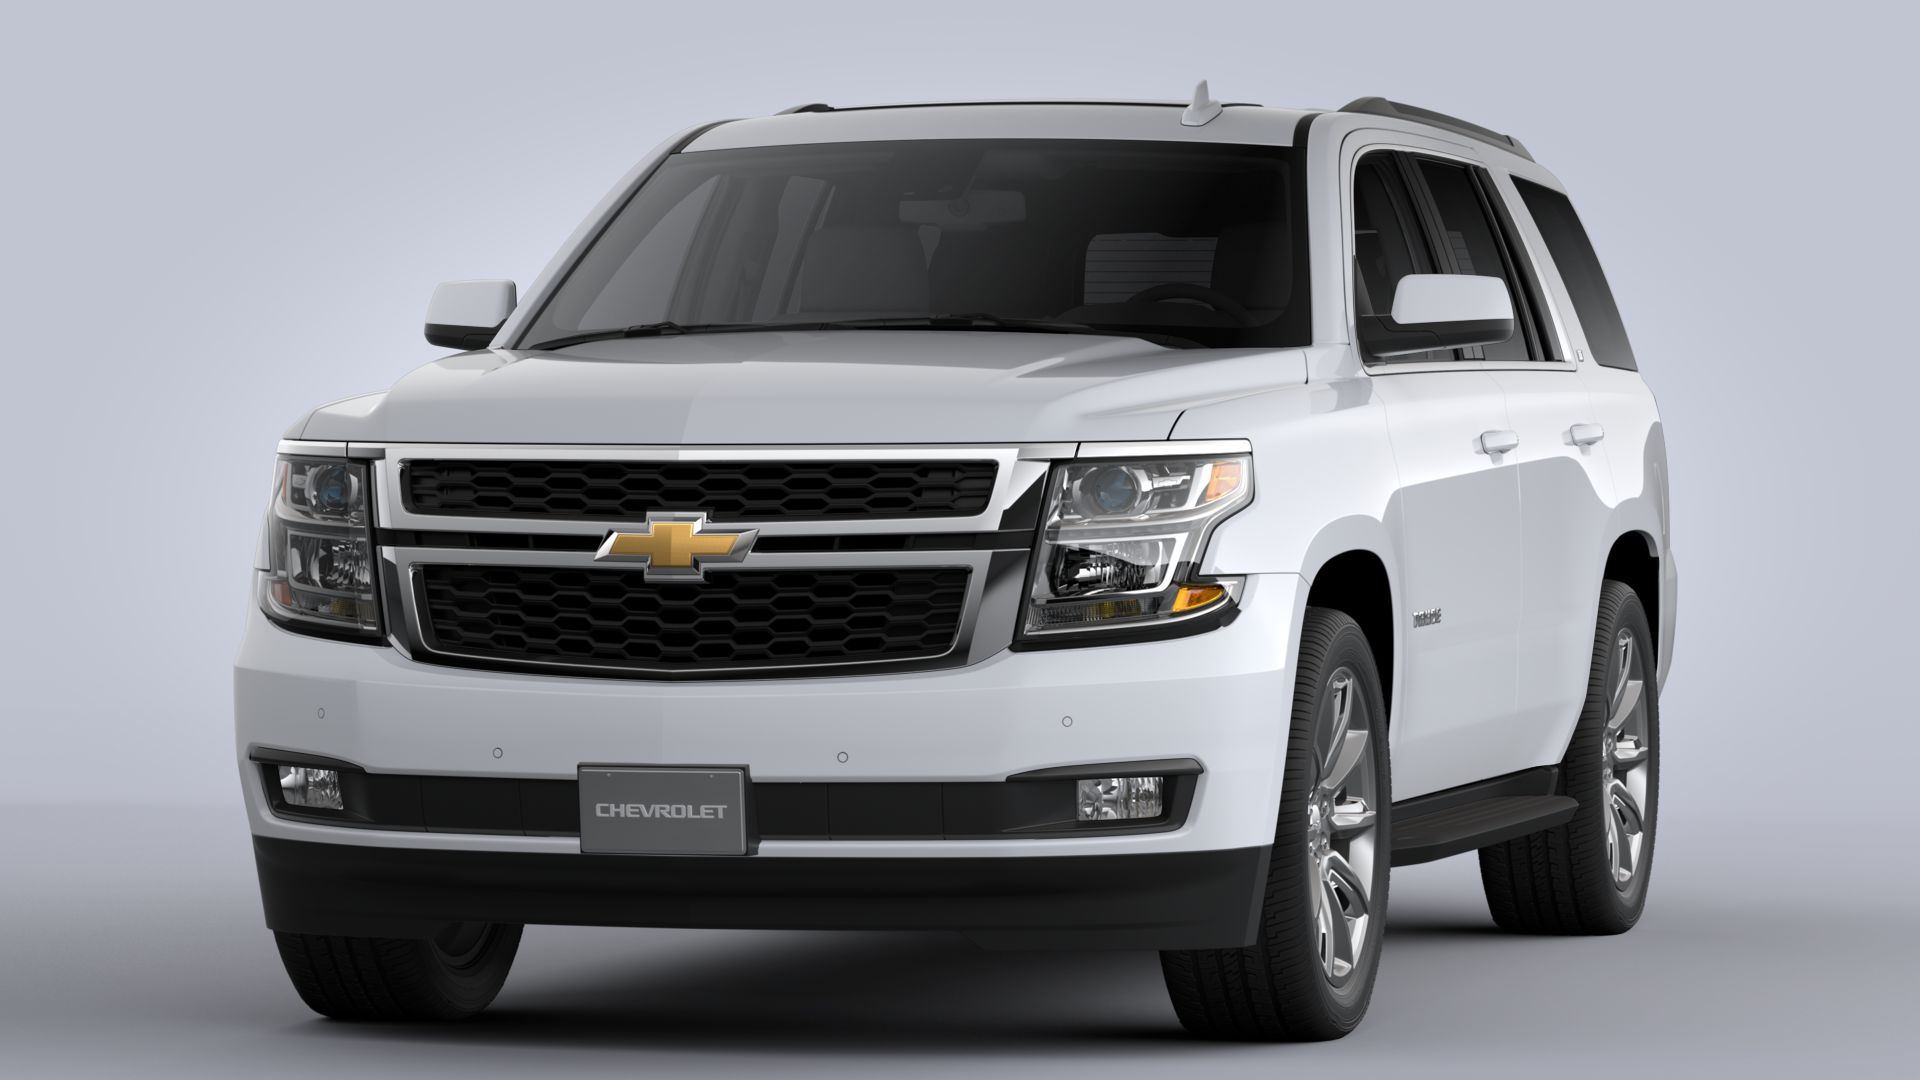 New 2020 Chevrolet Tahoe LT Four Wheel Drive SUV